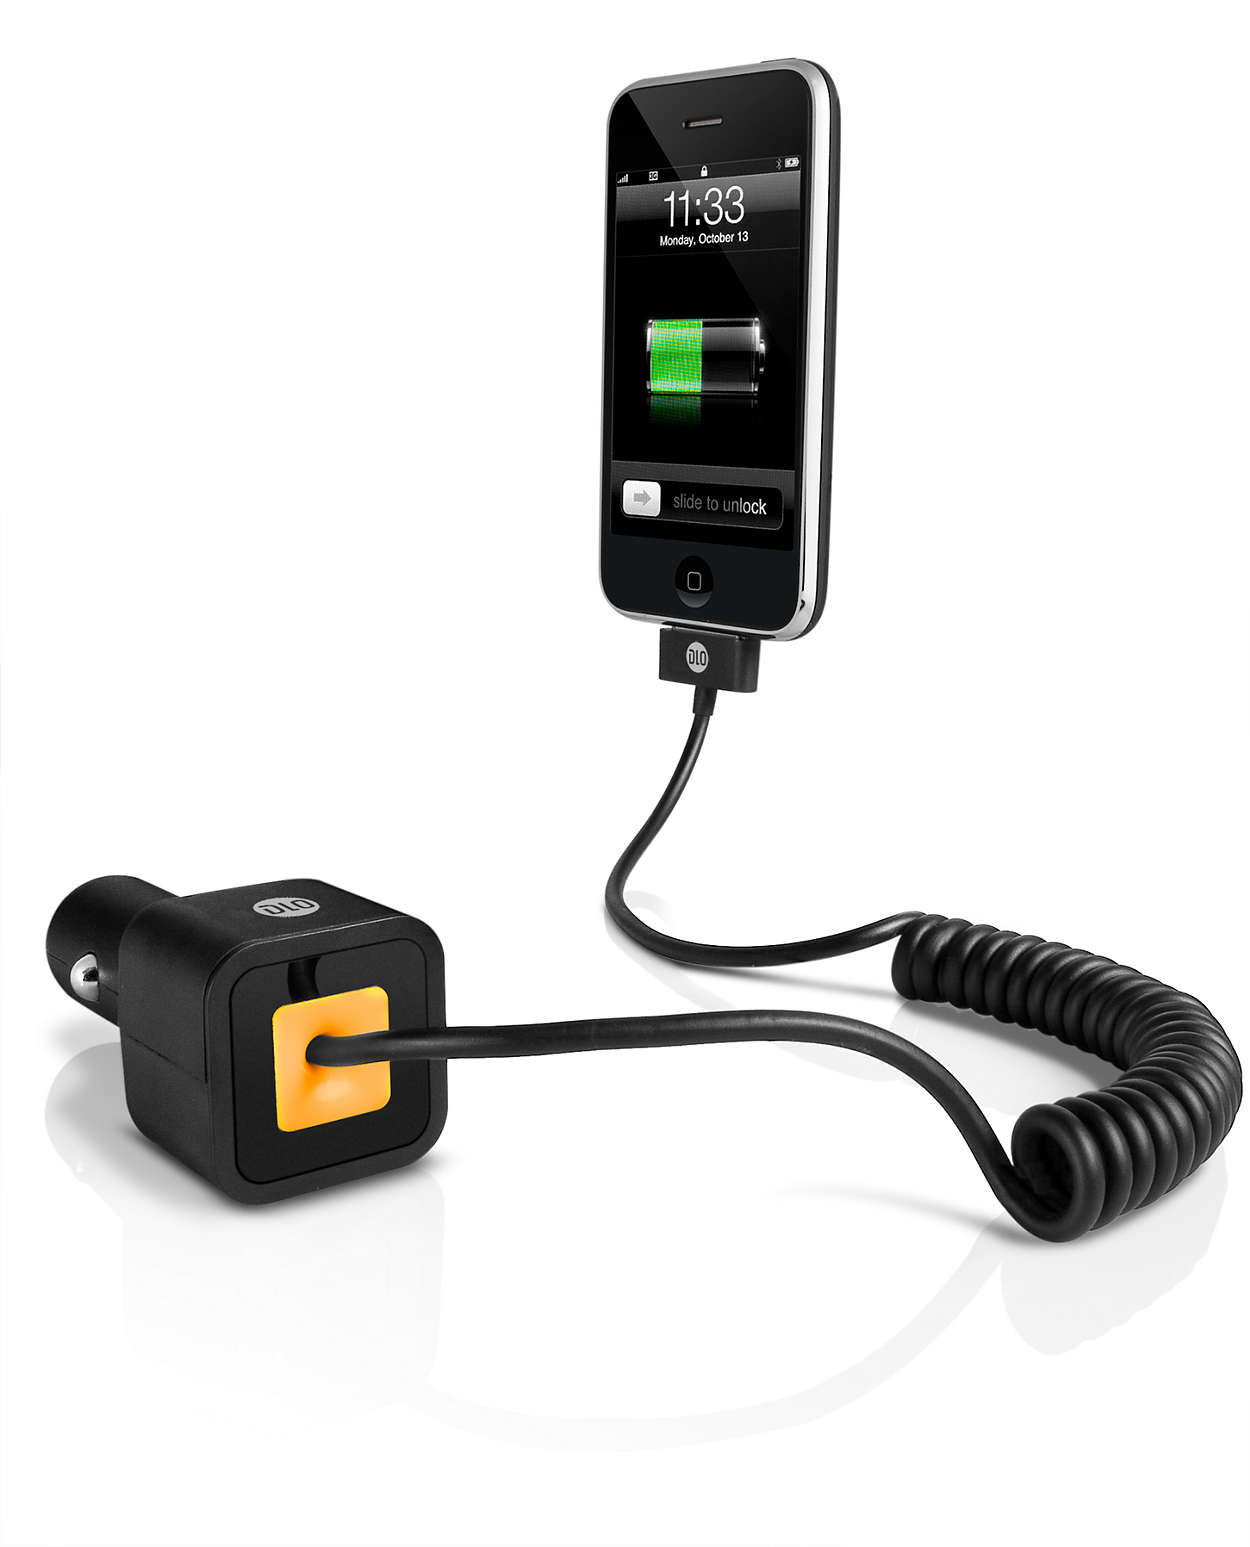 Charge iPhone or iPod in the car